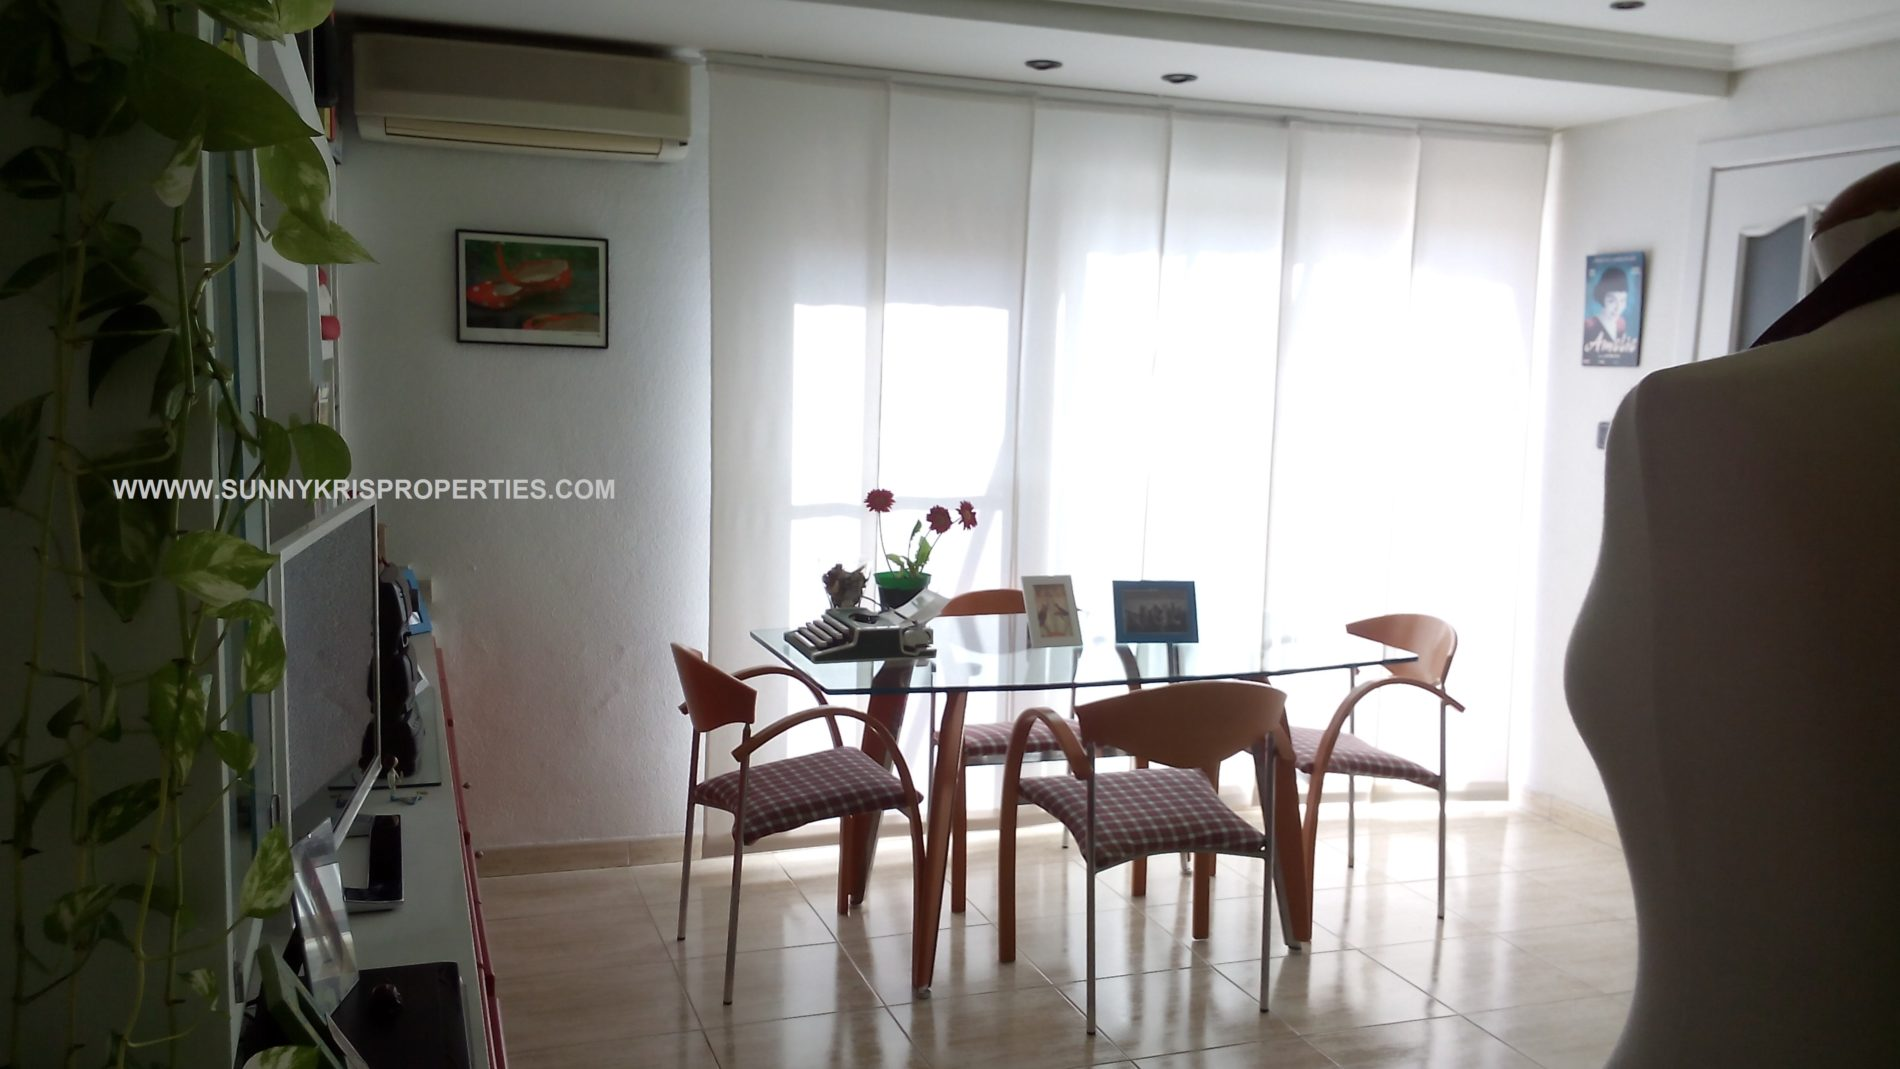 Penthouse with Amazing Terrace of 12m2 Close to the Centre of Alicante